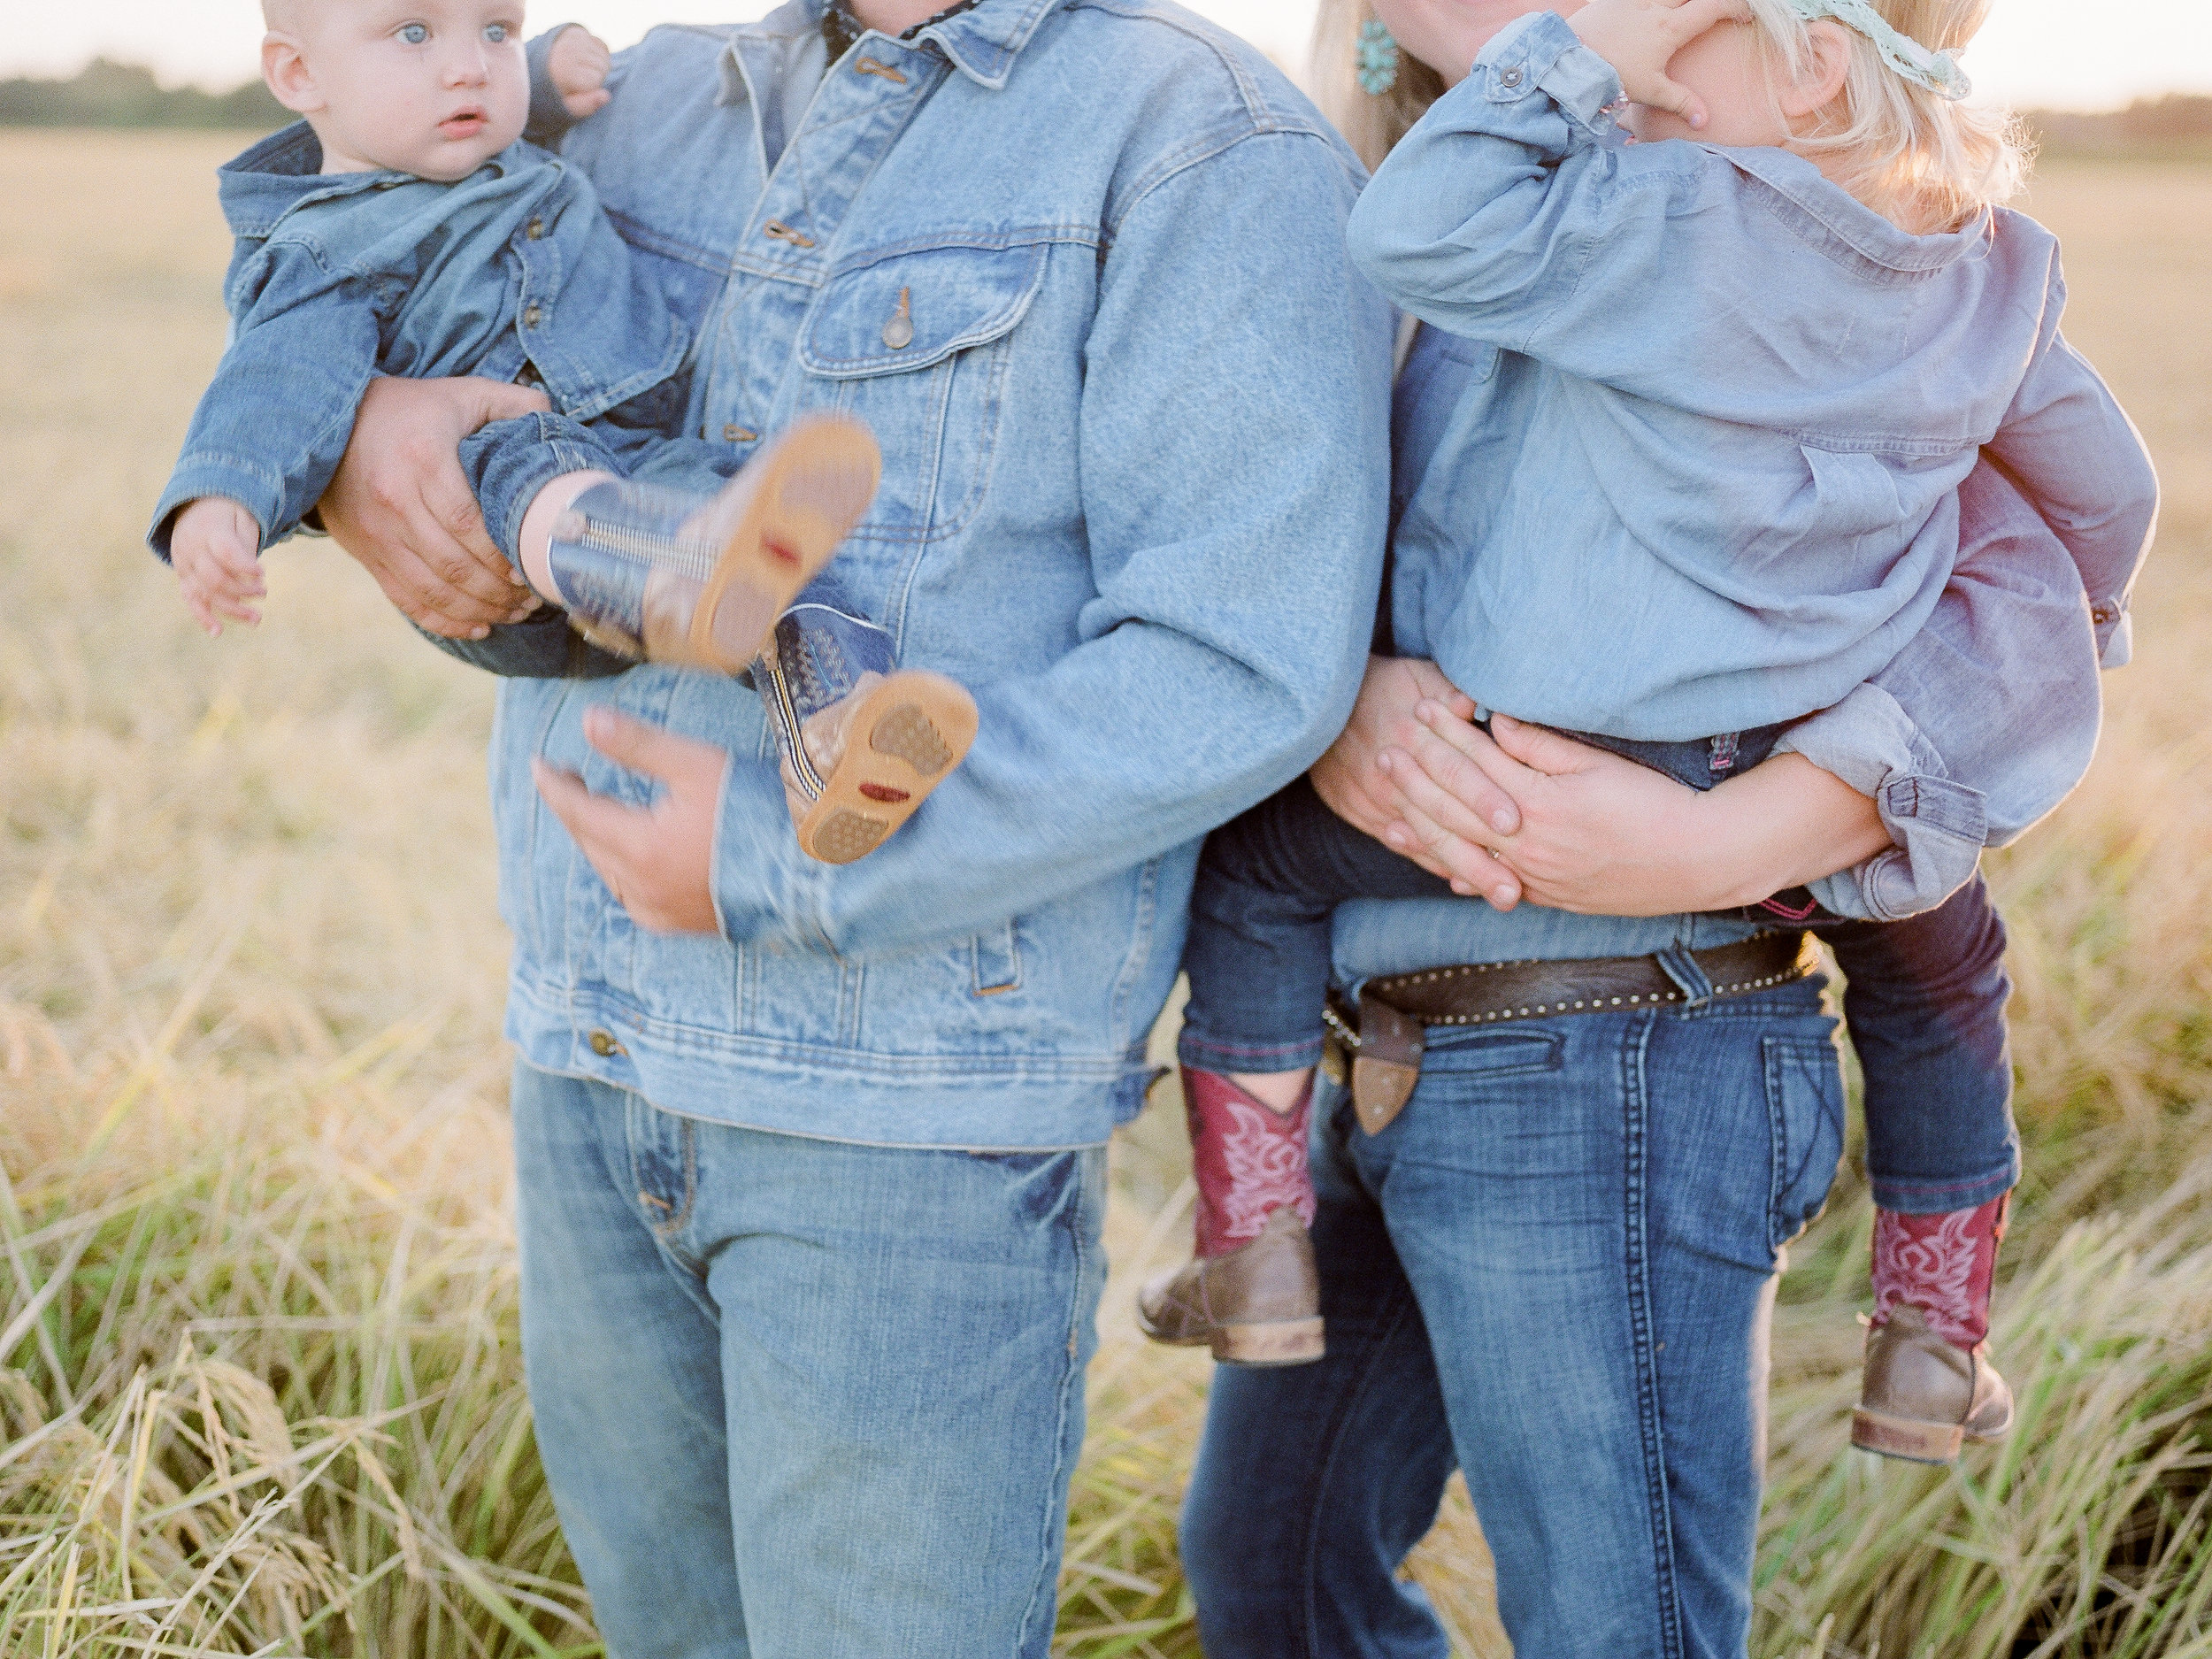 48Northern-California-Family-Photographer (4 of).jpg